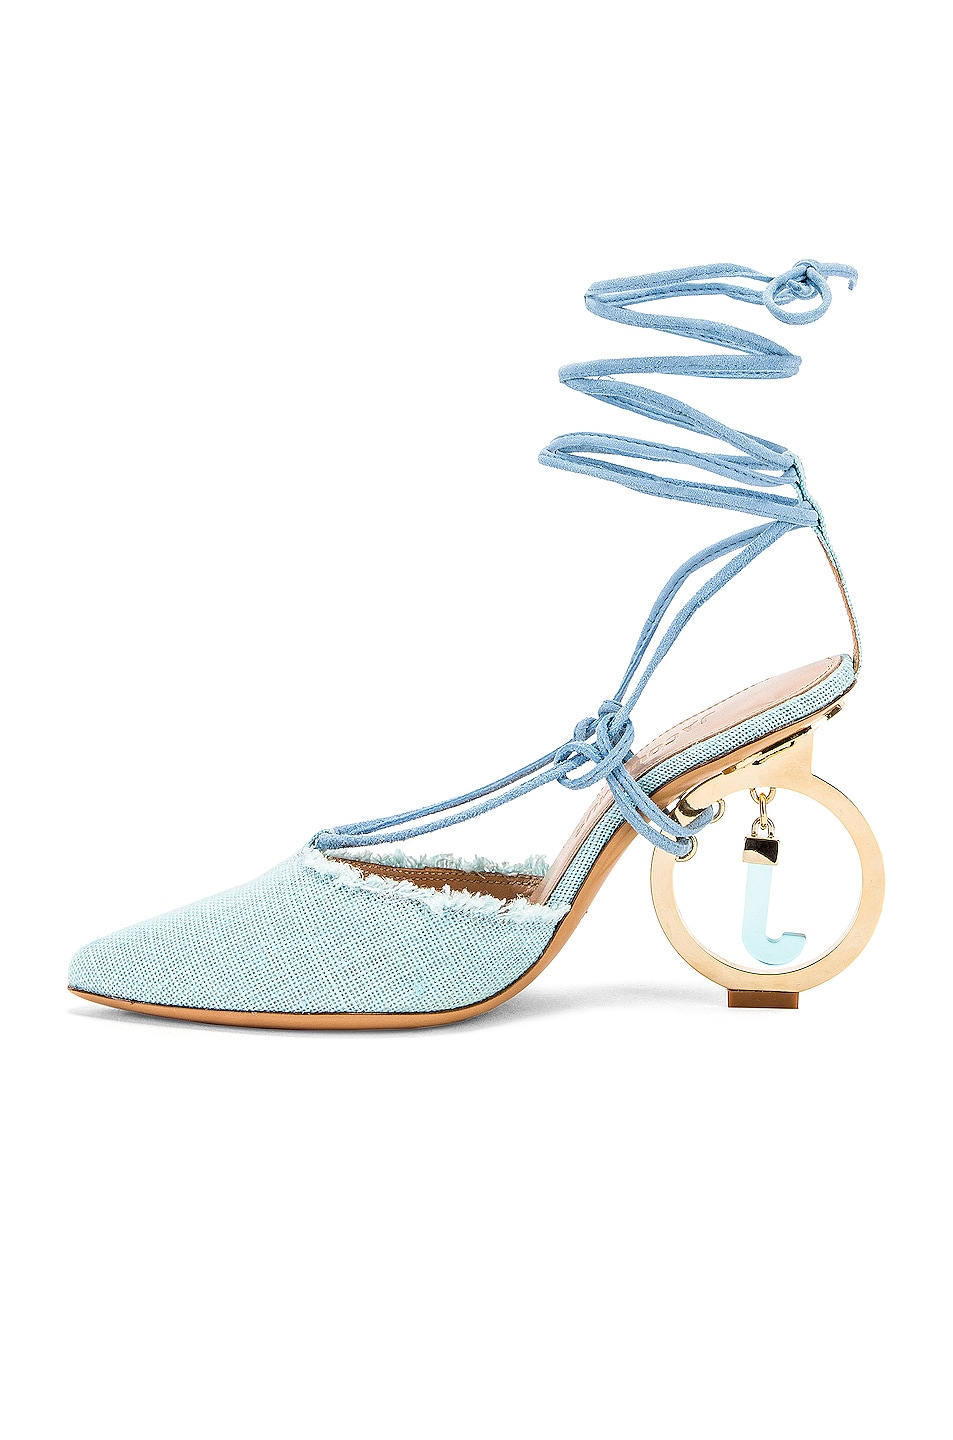 Image 5 of JACQUEMUS Chaussures Riviera Sandal in Light Blue